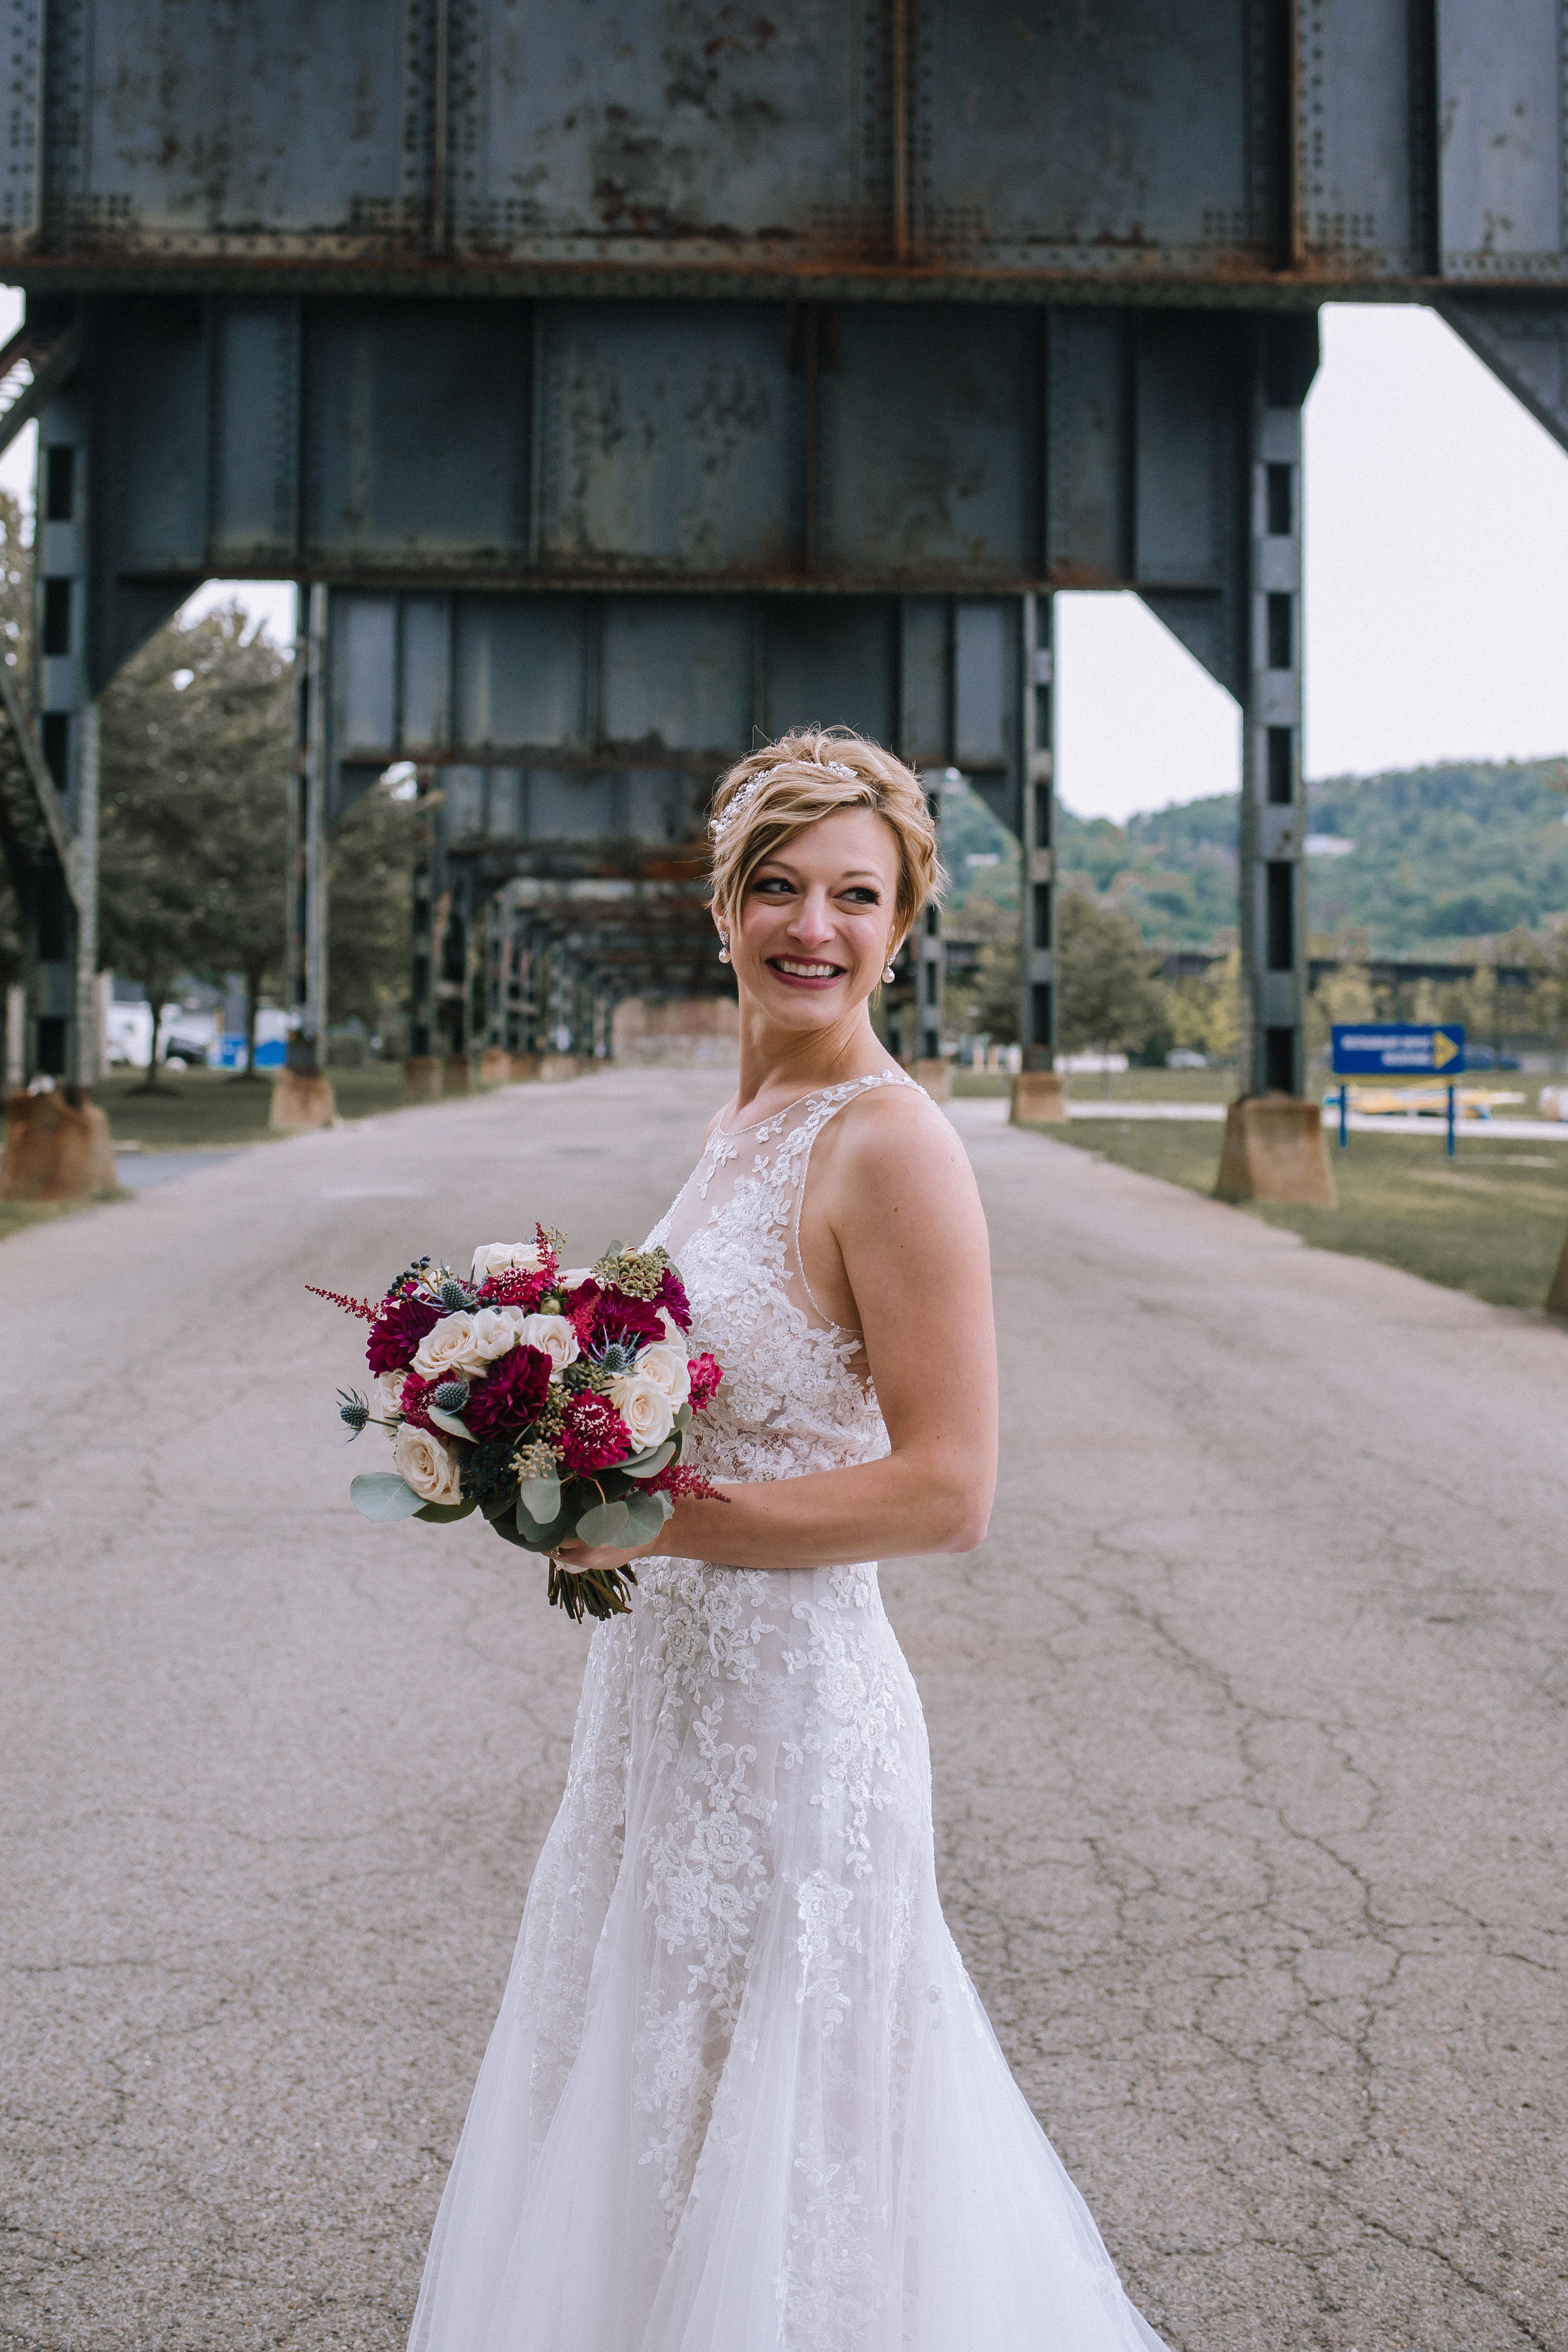 Brides poses in modern wedding dress with red wedding bouquet for Pittsburgh wedding at Studio Slate planned by Exhale Events. Find more wedding inspiration at exhale-events.com!